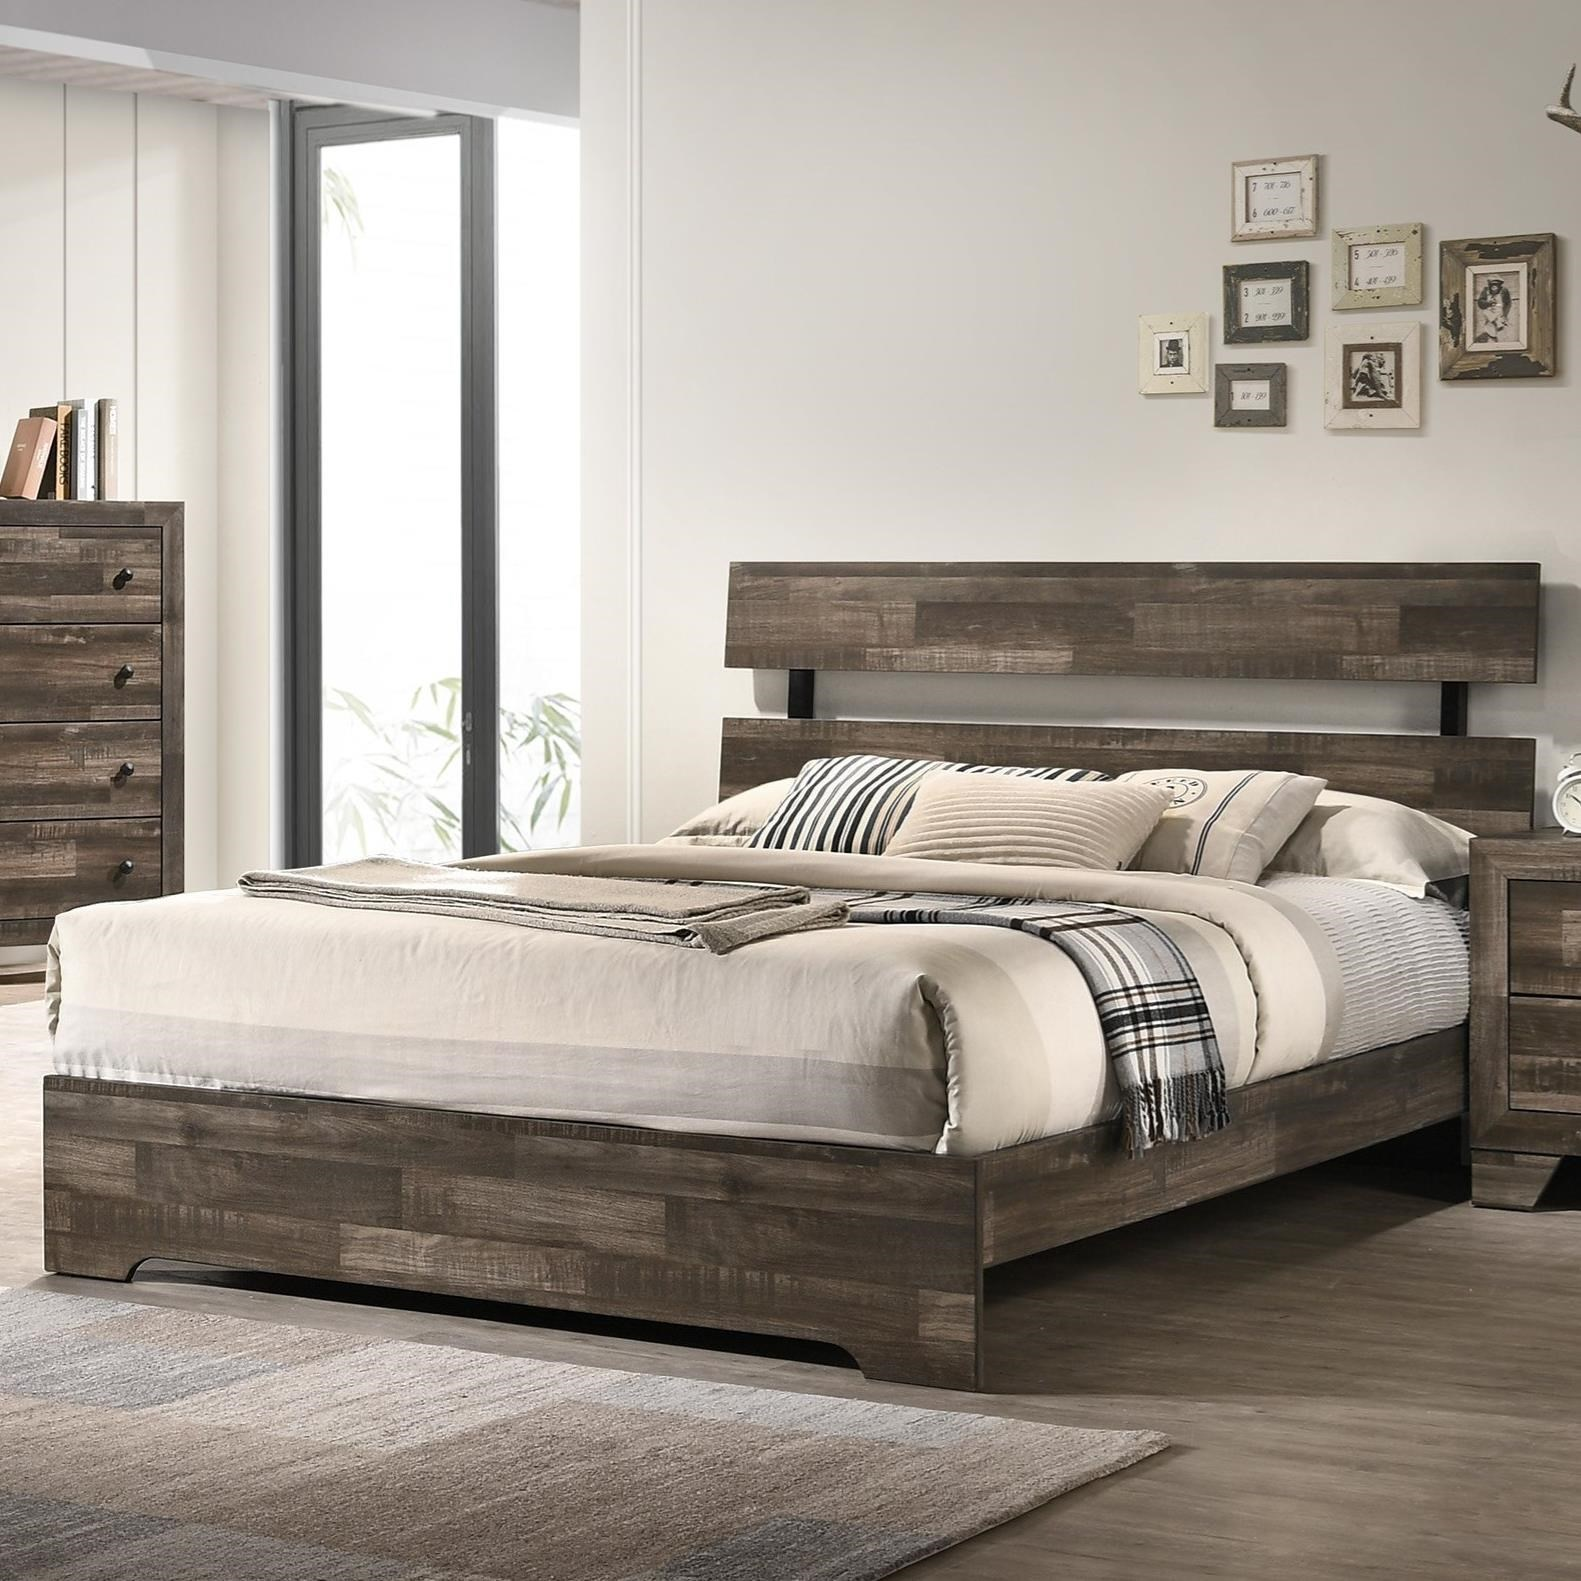 Picture of: Crown Mark Atticus Rustic Queen Bed Royal Furniture Platform Beds Low Profile Beds